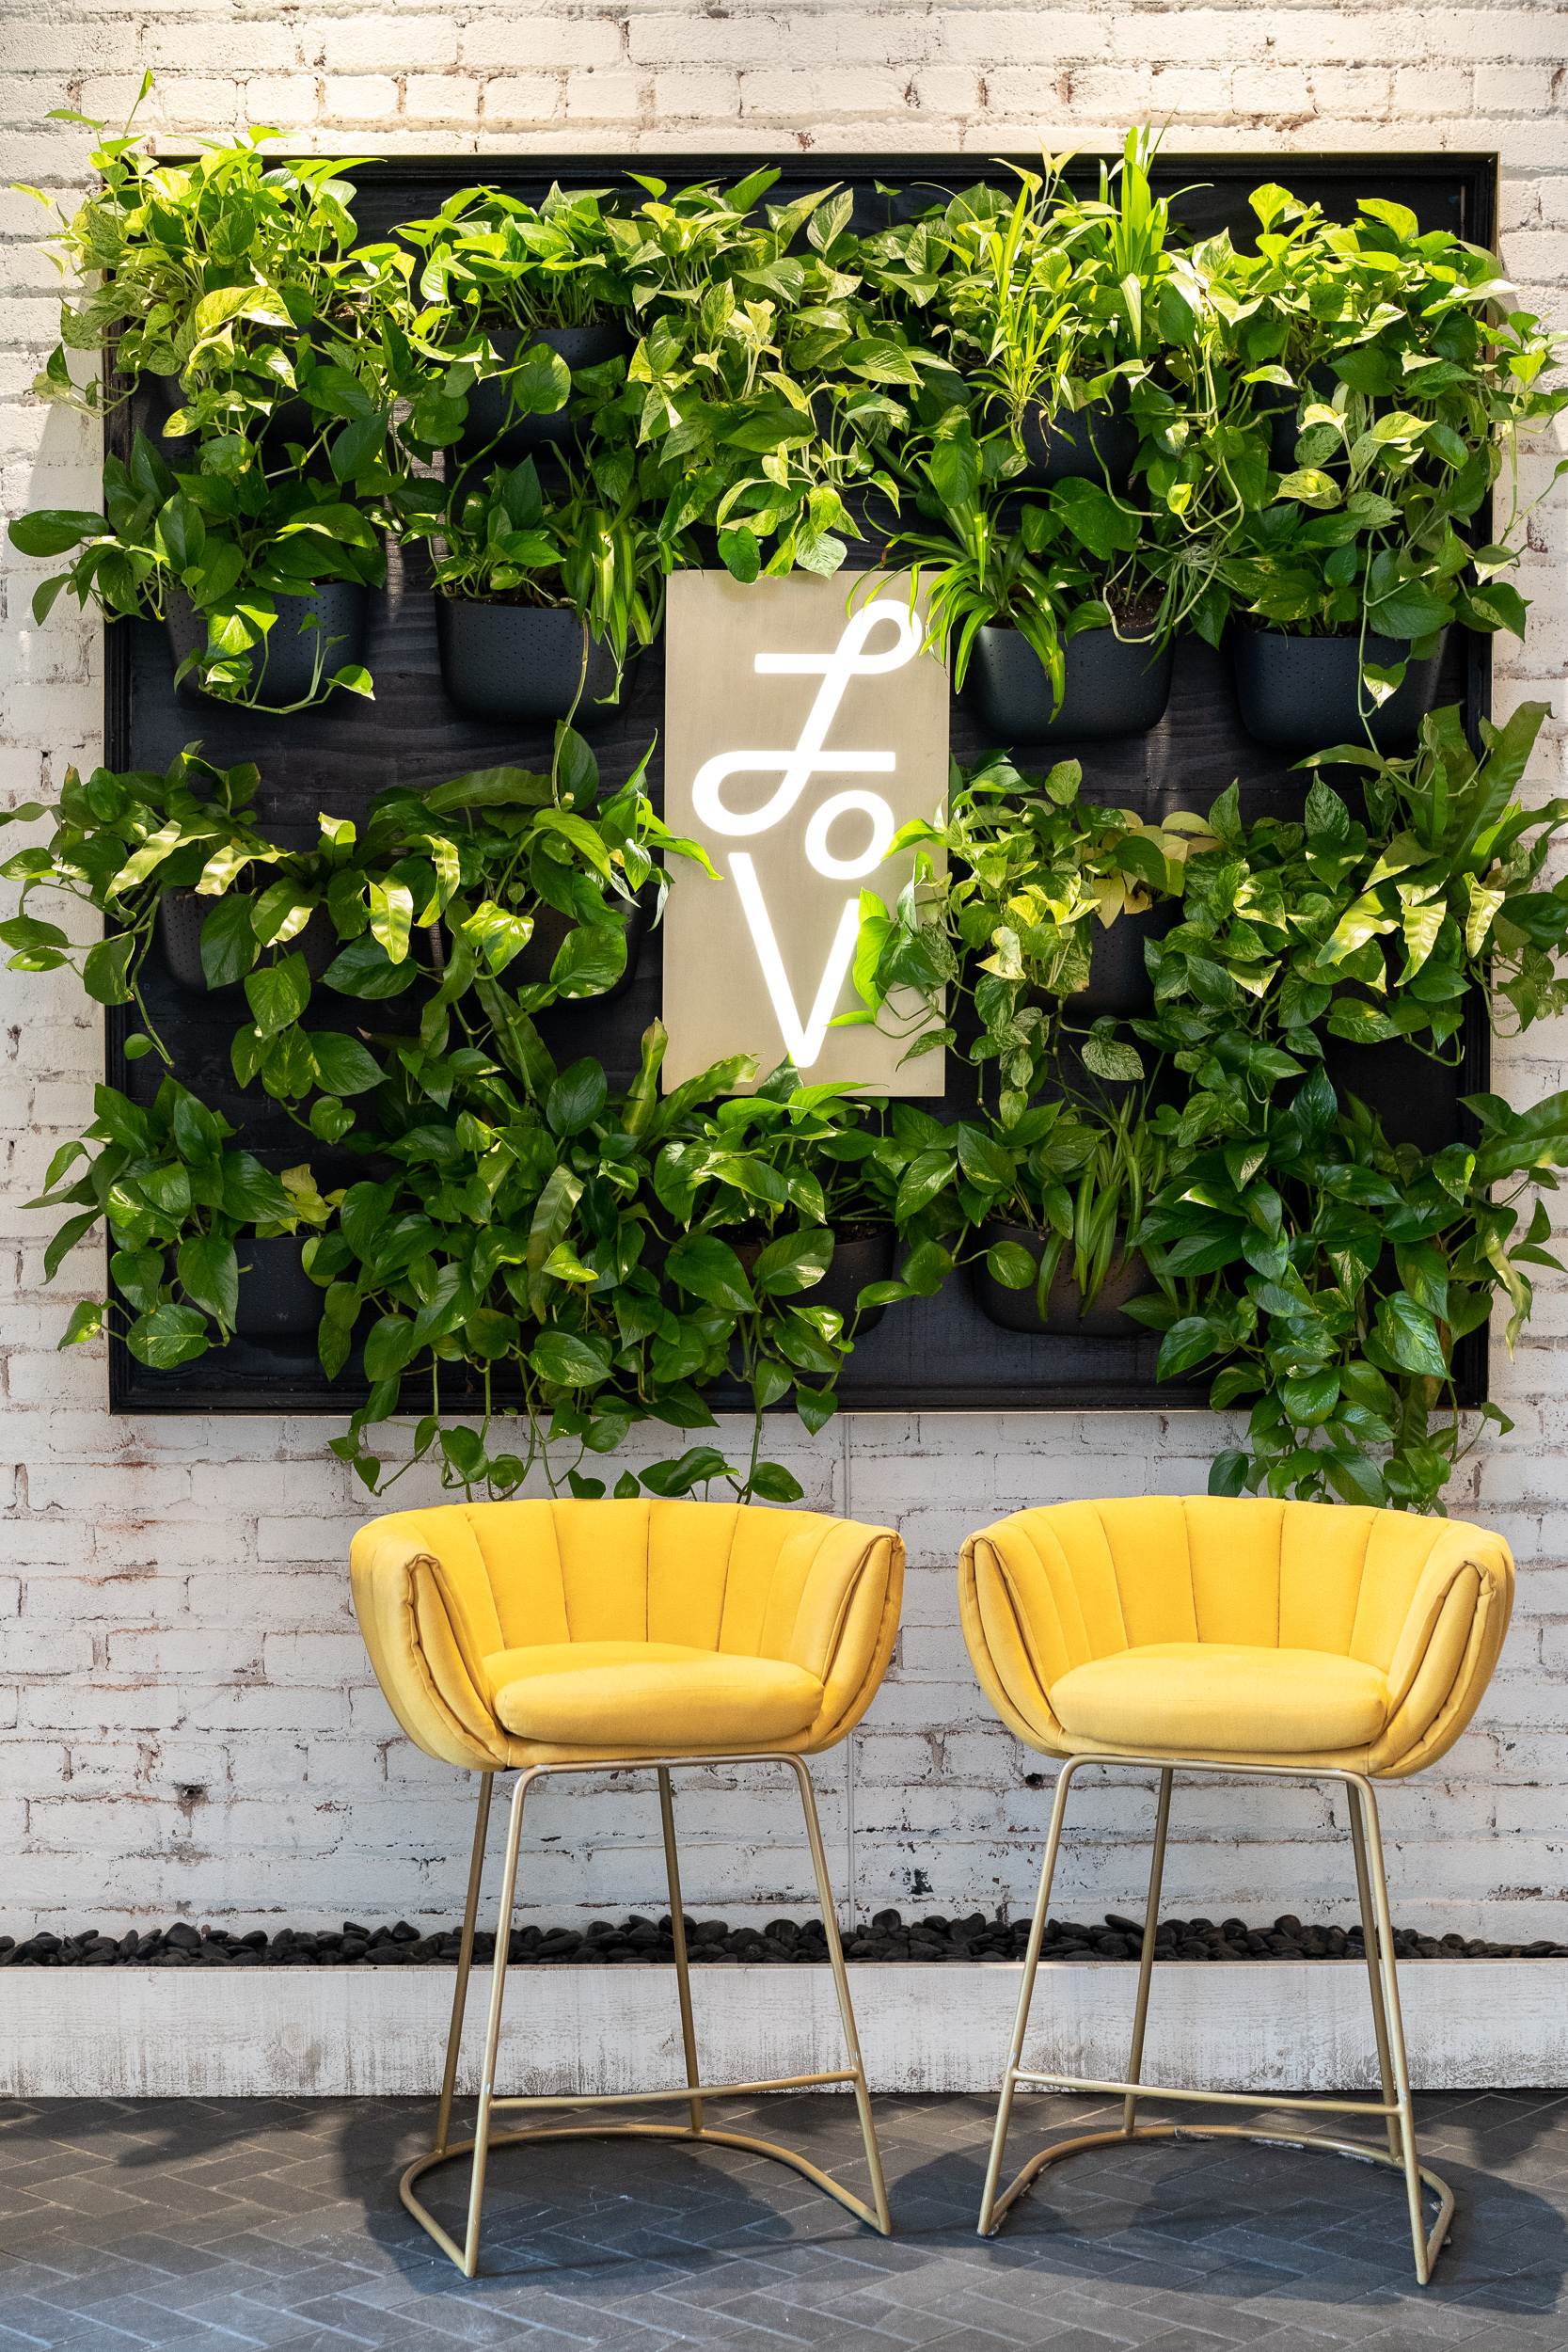 Who doesn't want to be welcomed by lush greens and punchy yellow bar stools?